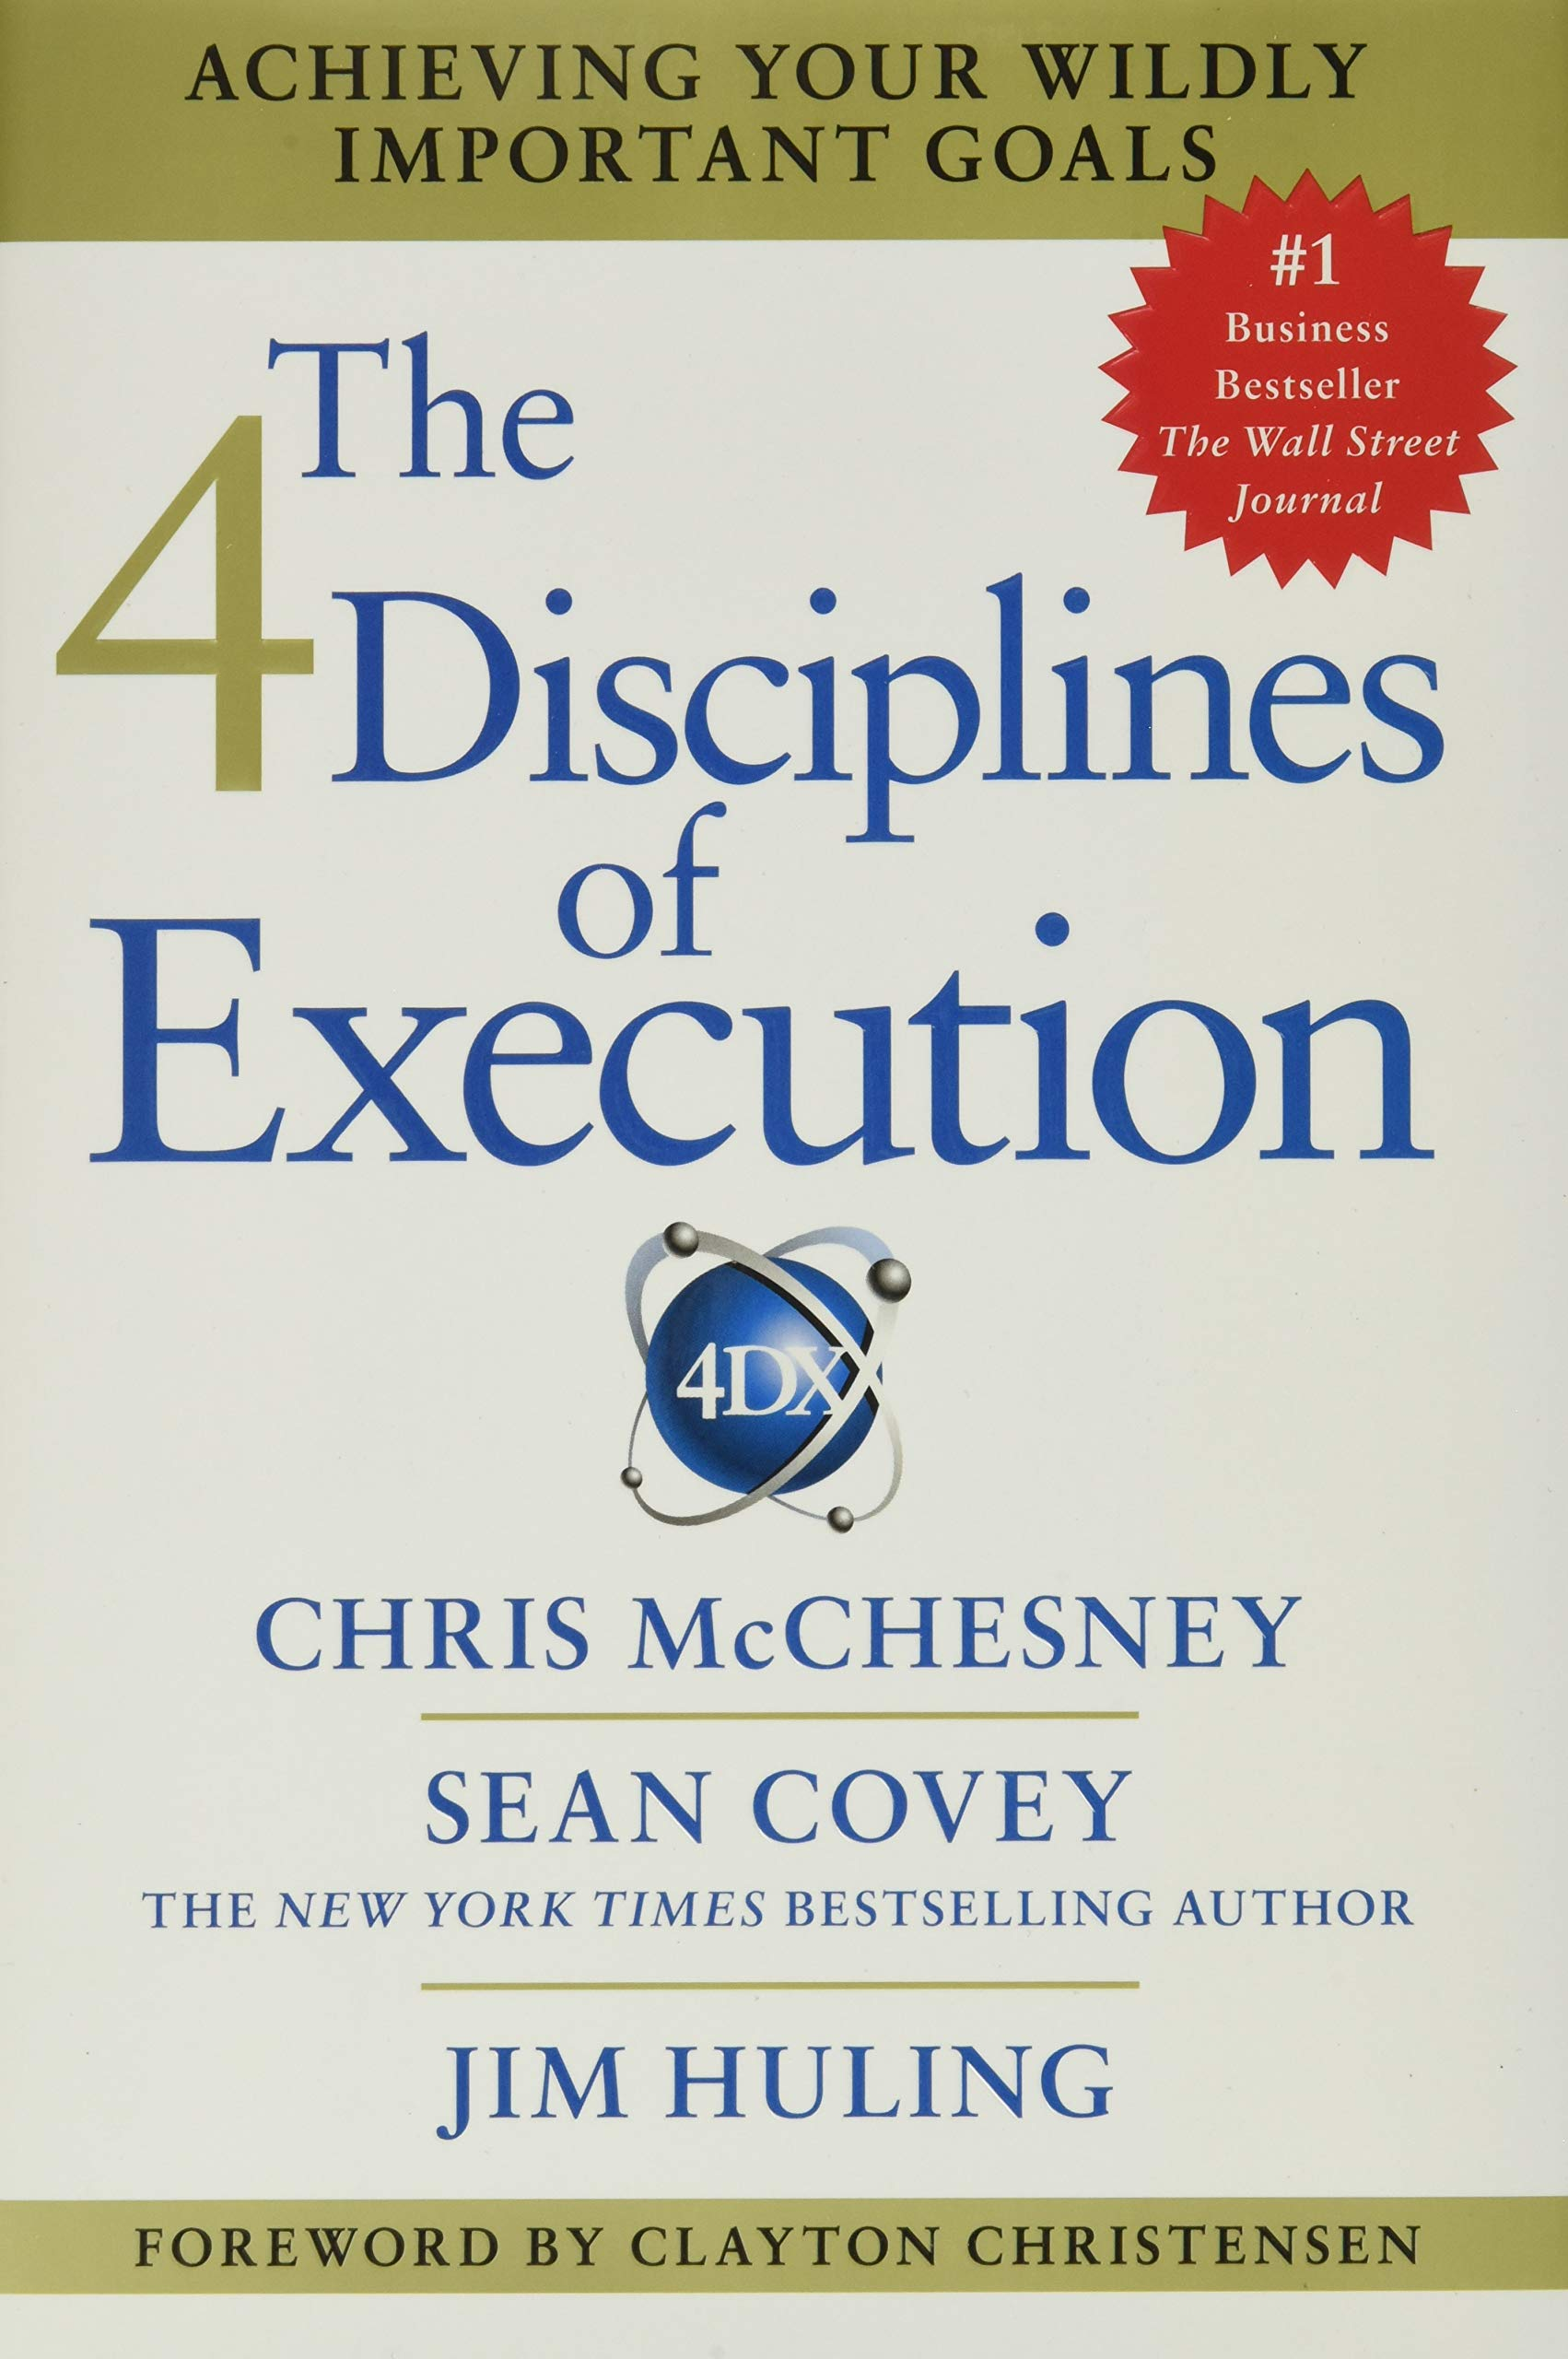 Amazon.com: The 4 Disciplines of Execution: Achieving Your Wildly Important  Goals (9781451627053): McChesney, Chris, Covey, Sean, Huling, Jim: Books